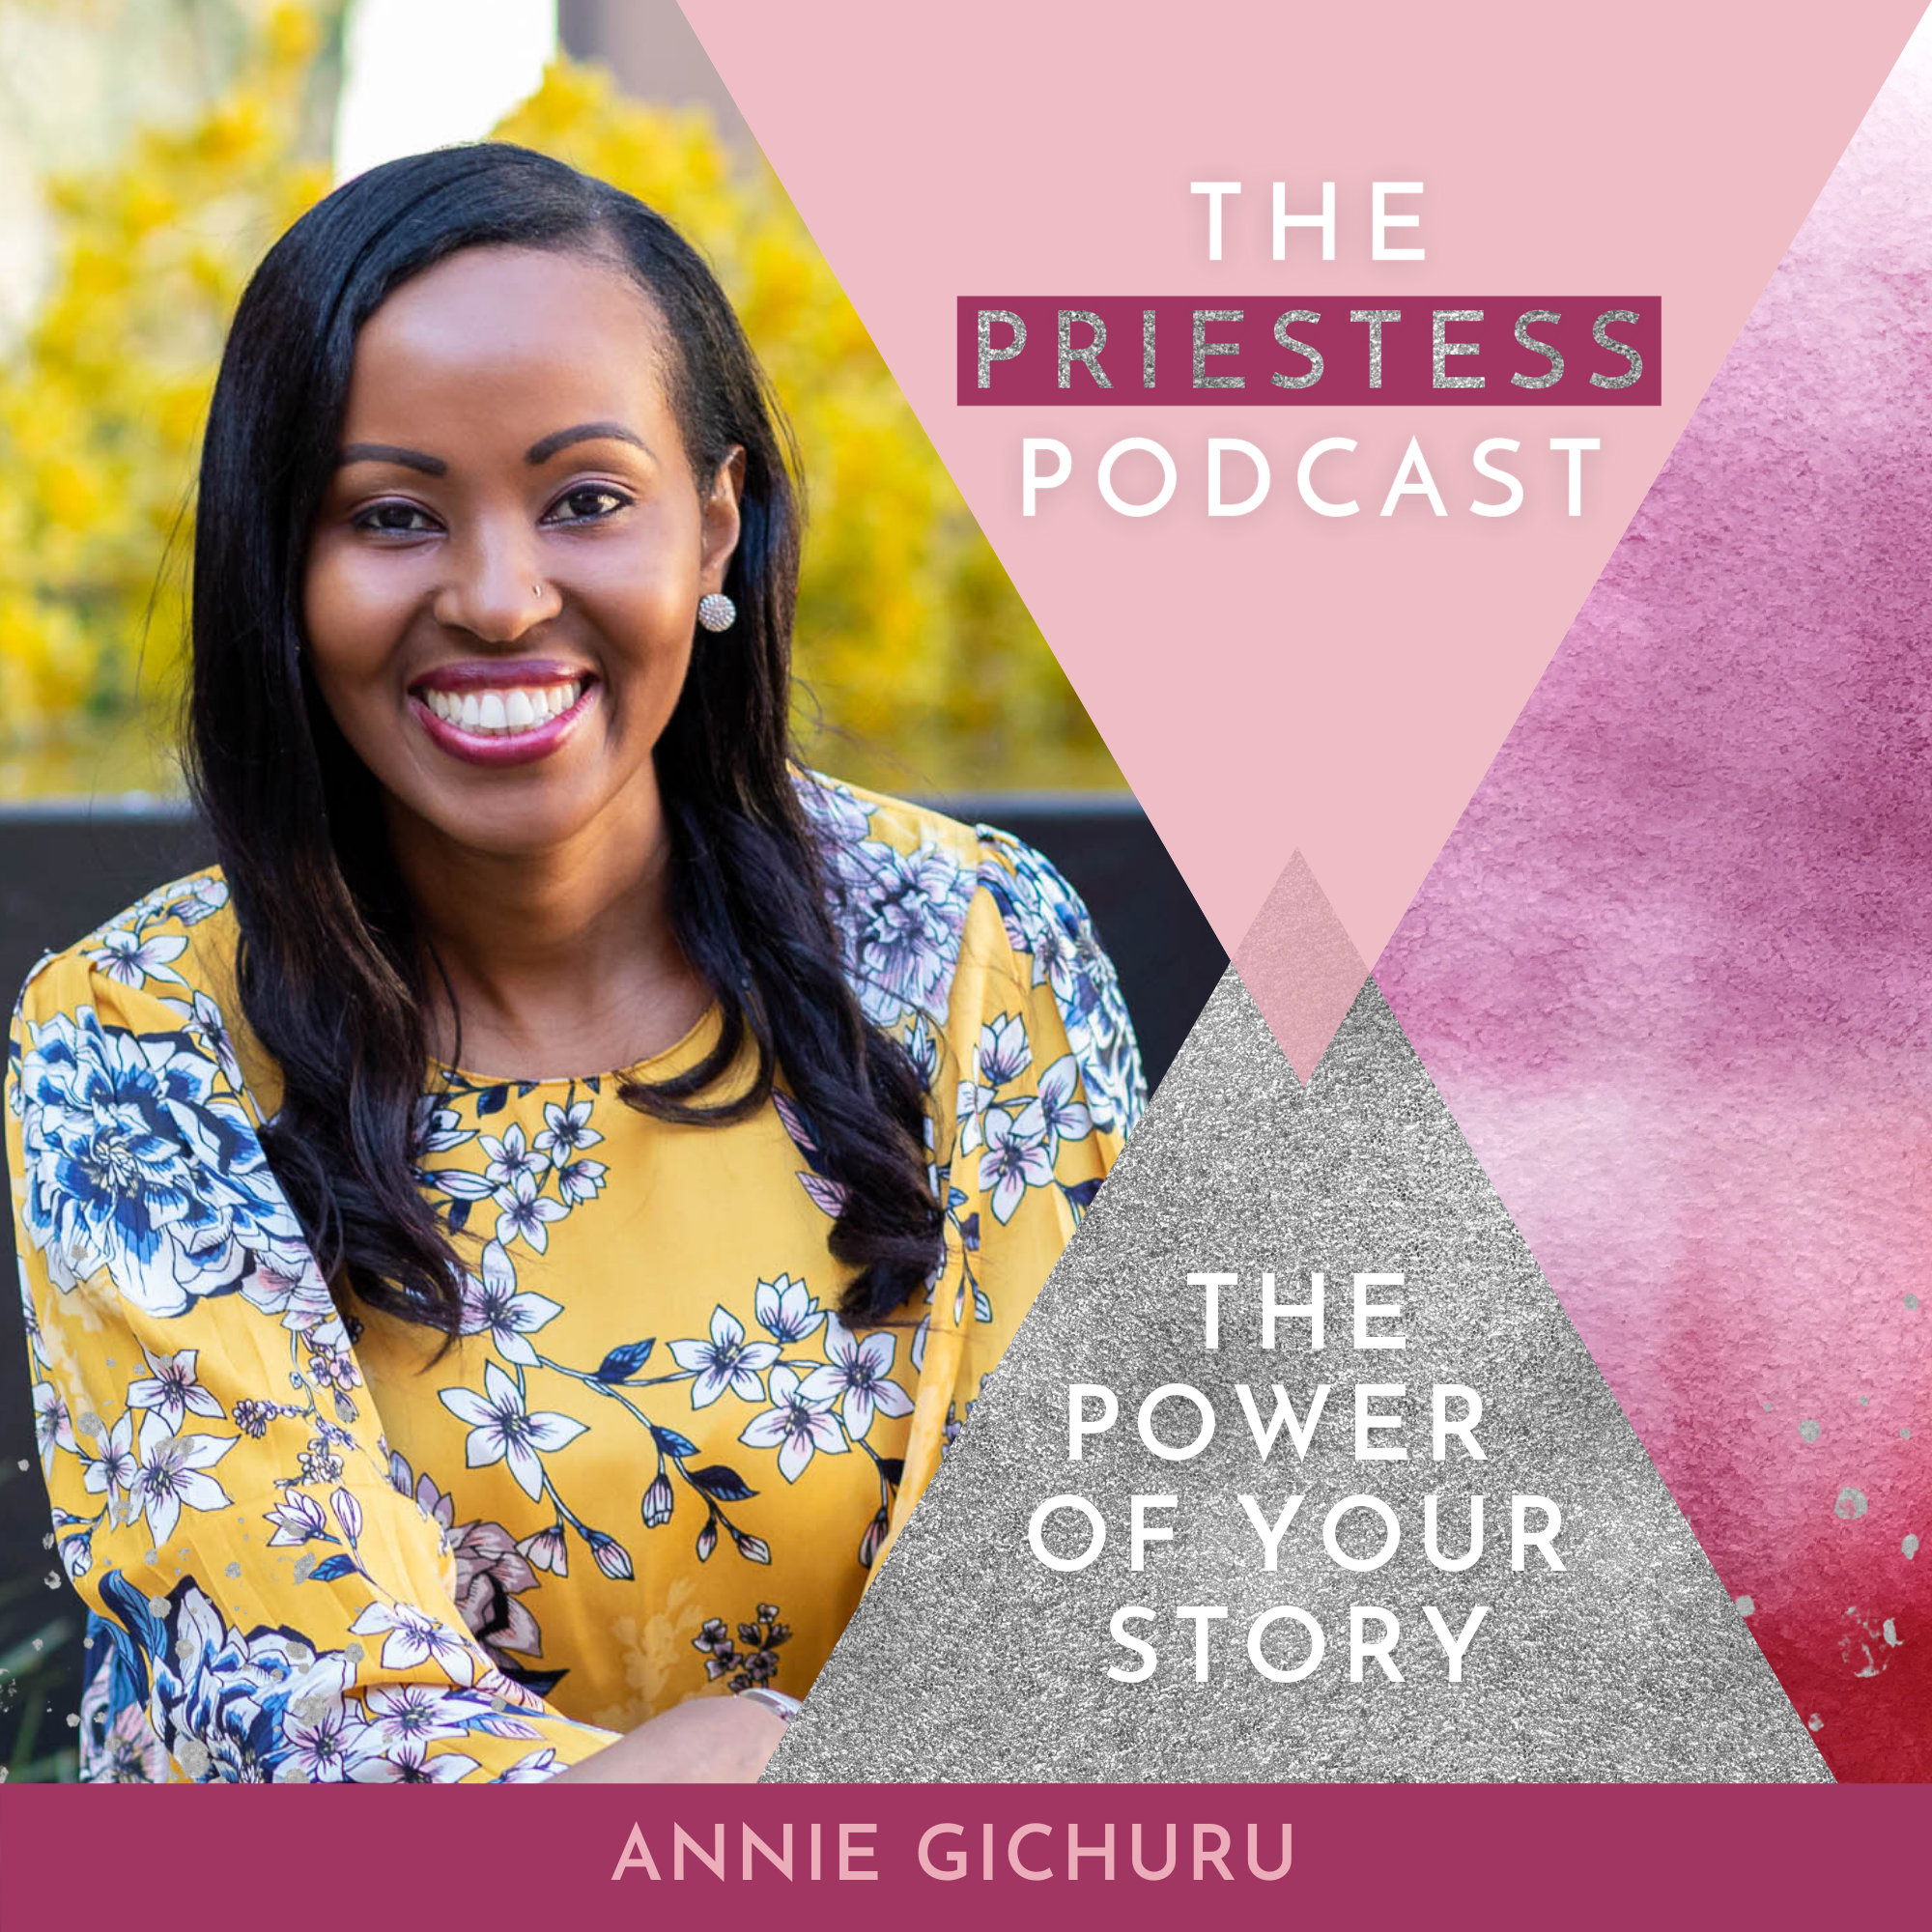 Annie Gichuru on The Power Of Your Story